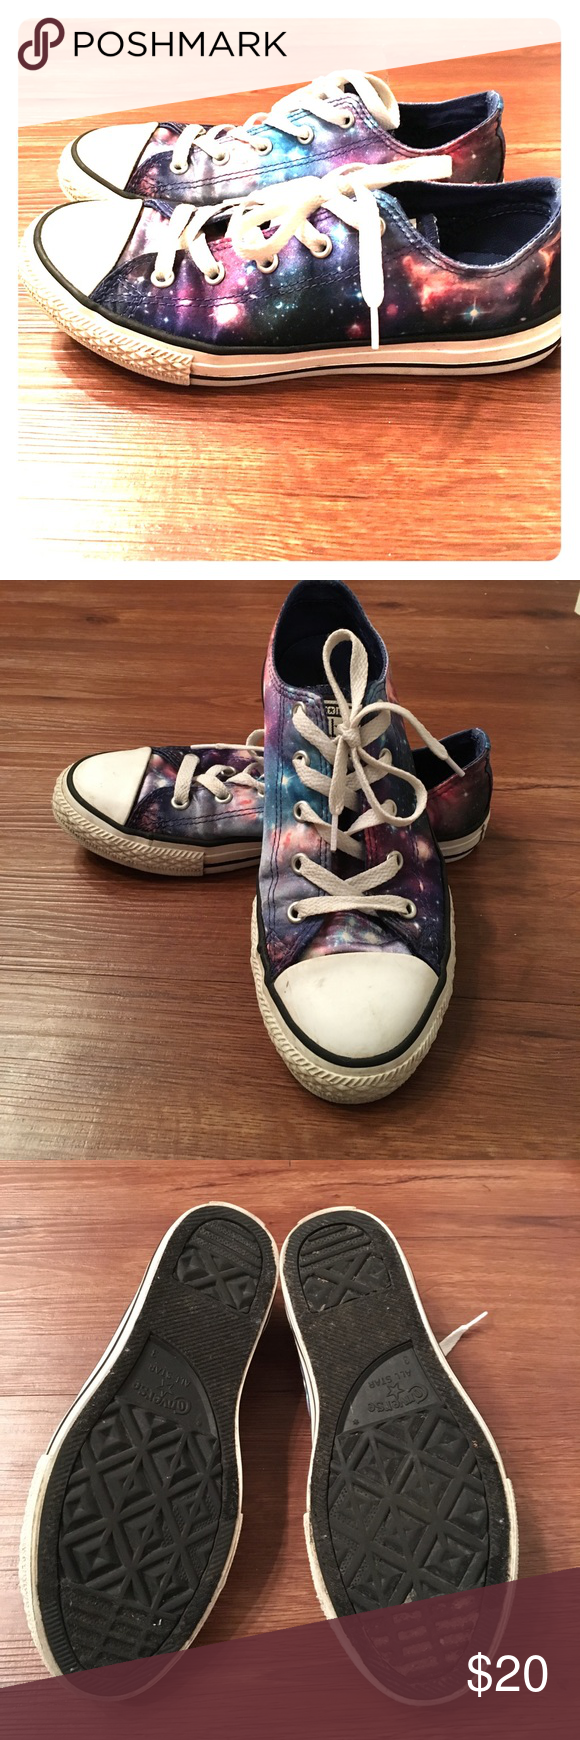 ef4db39ae45778 Space print Converse all stars low tops US youth size 3 or EUR size 35 Converse  All Star low tops with space print. I m usually a women s 6 and these fit  ...